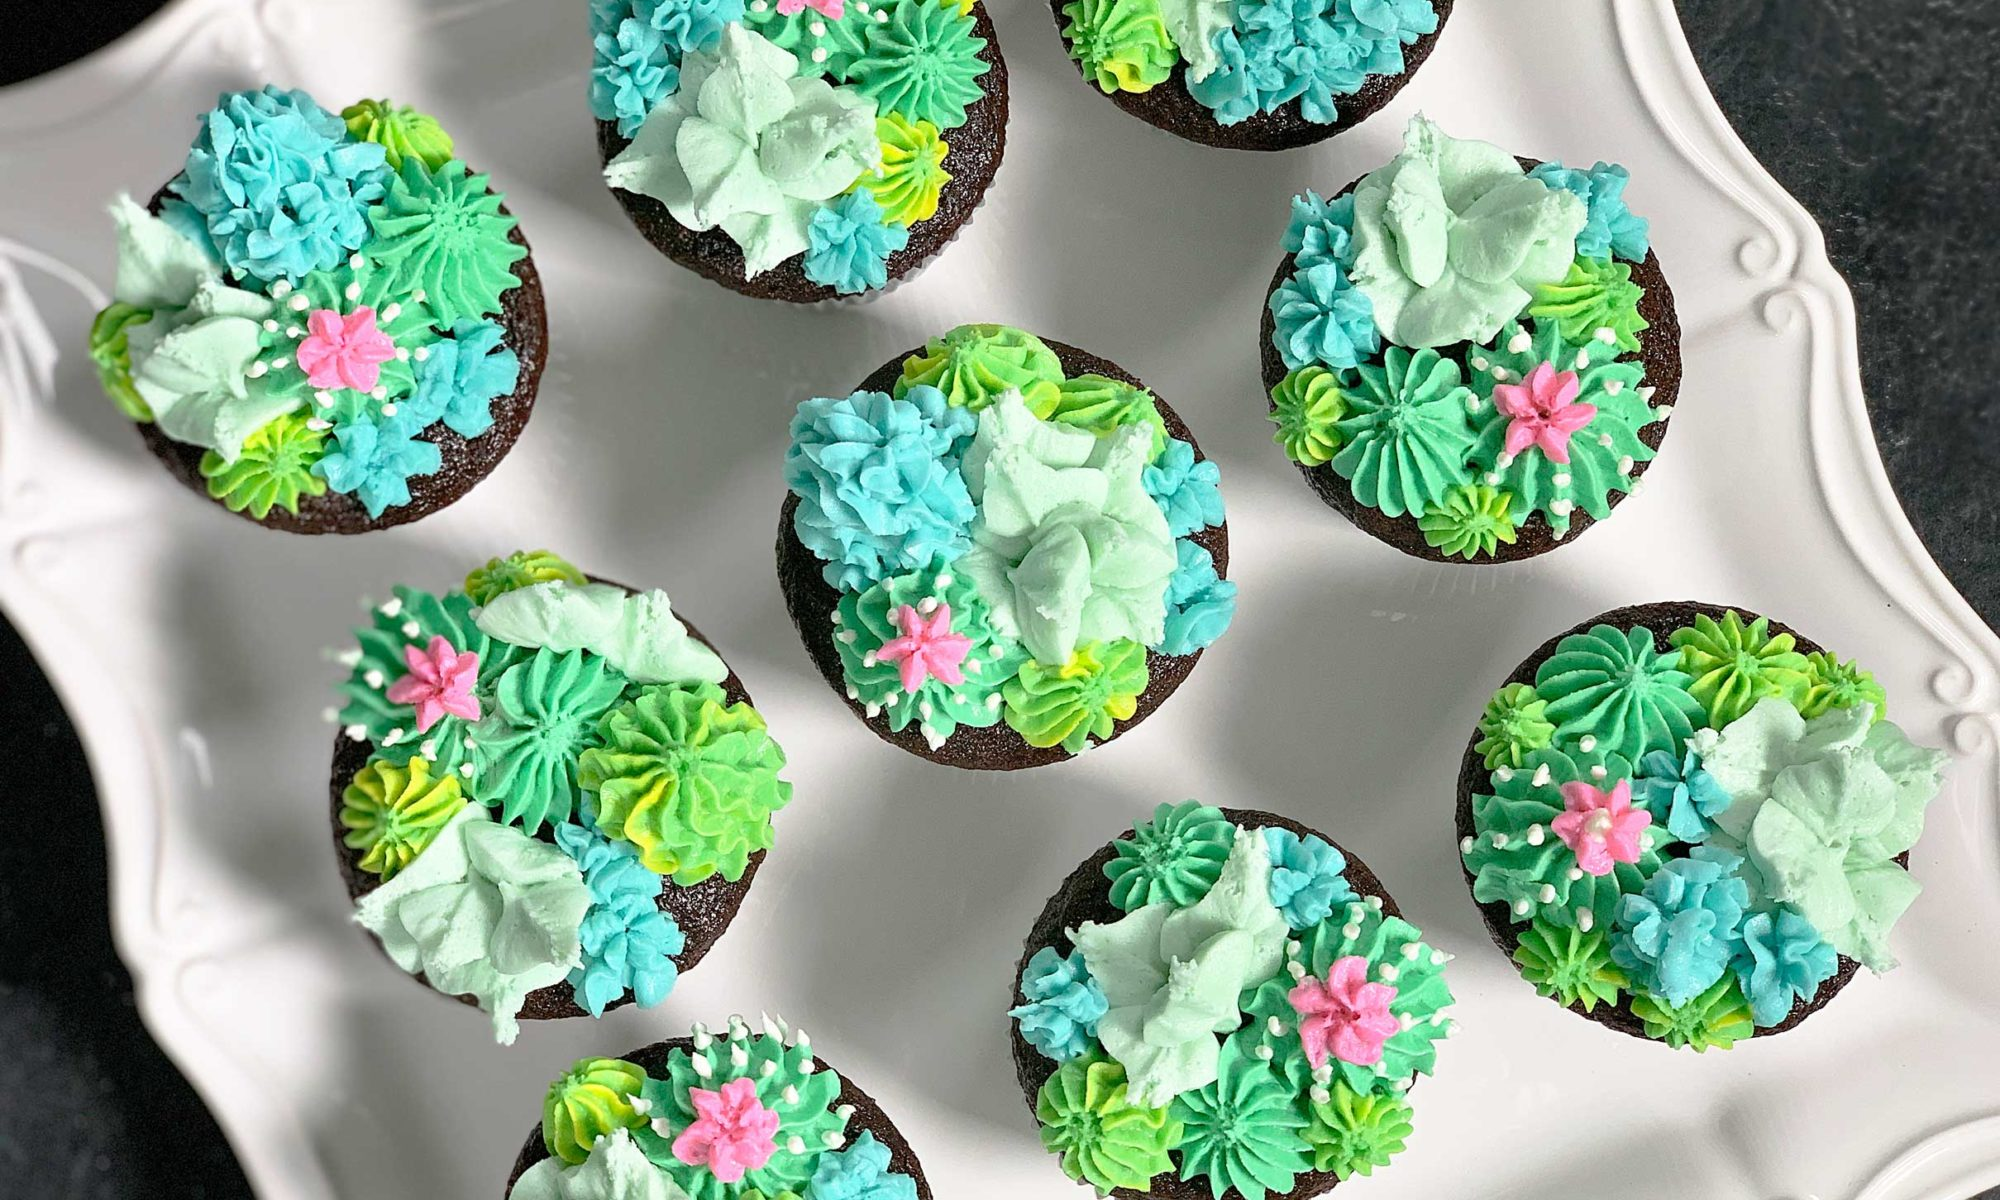 overhead view of cupcakes with buttercream cacti and succulents